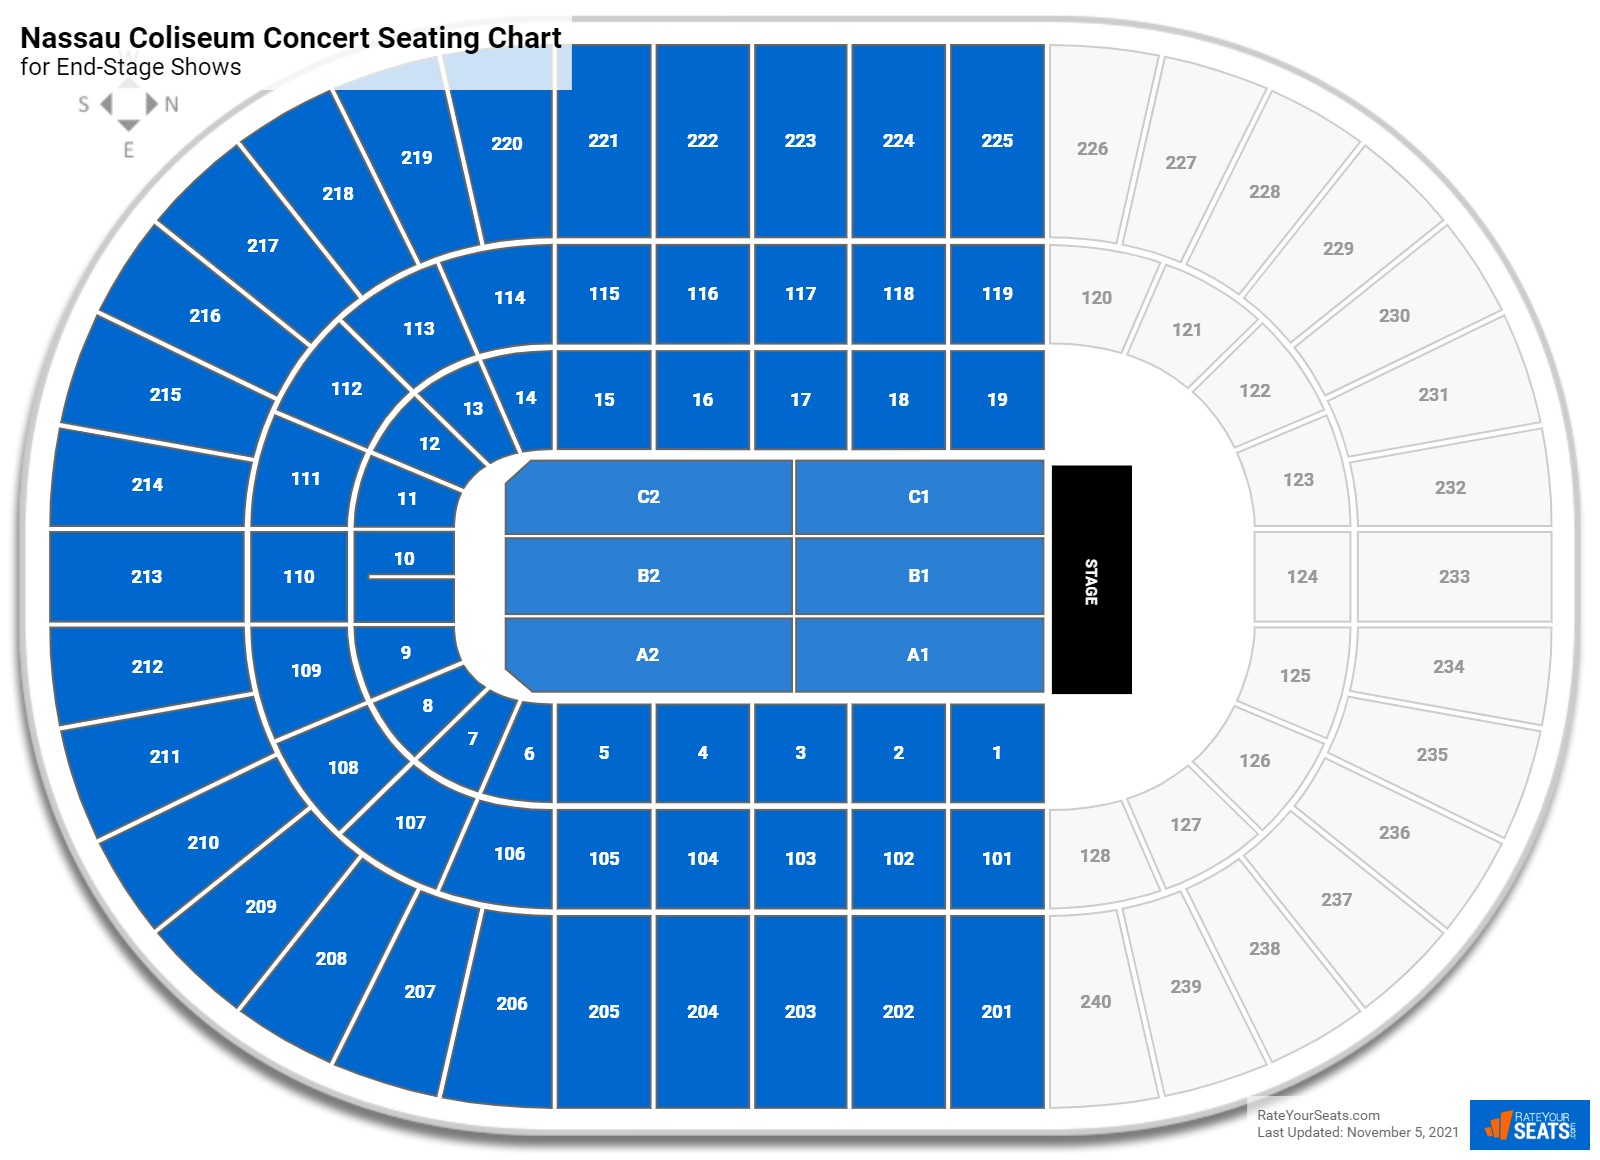 Nassau Coliseum Seating Chart for Concerts